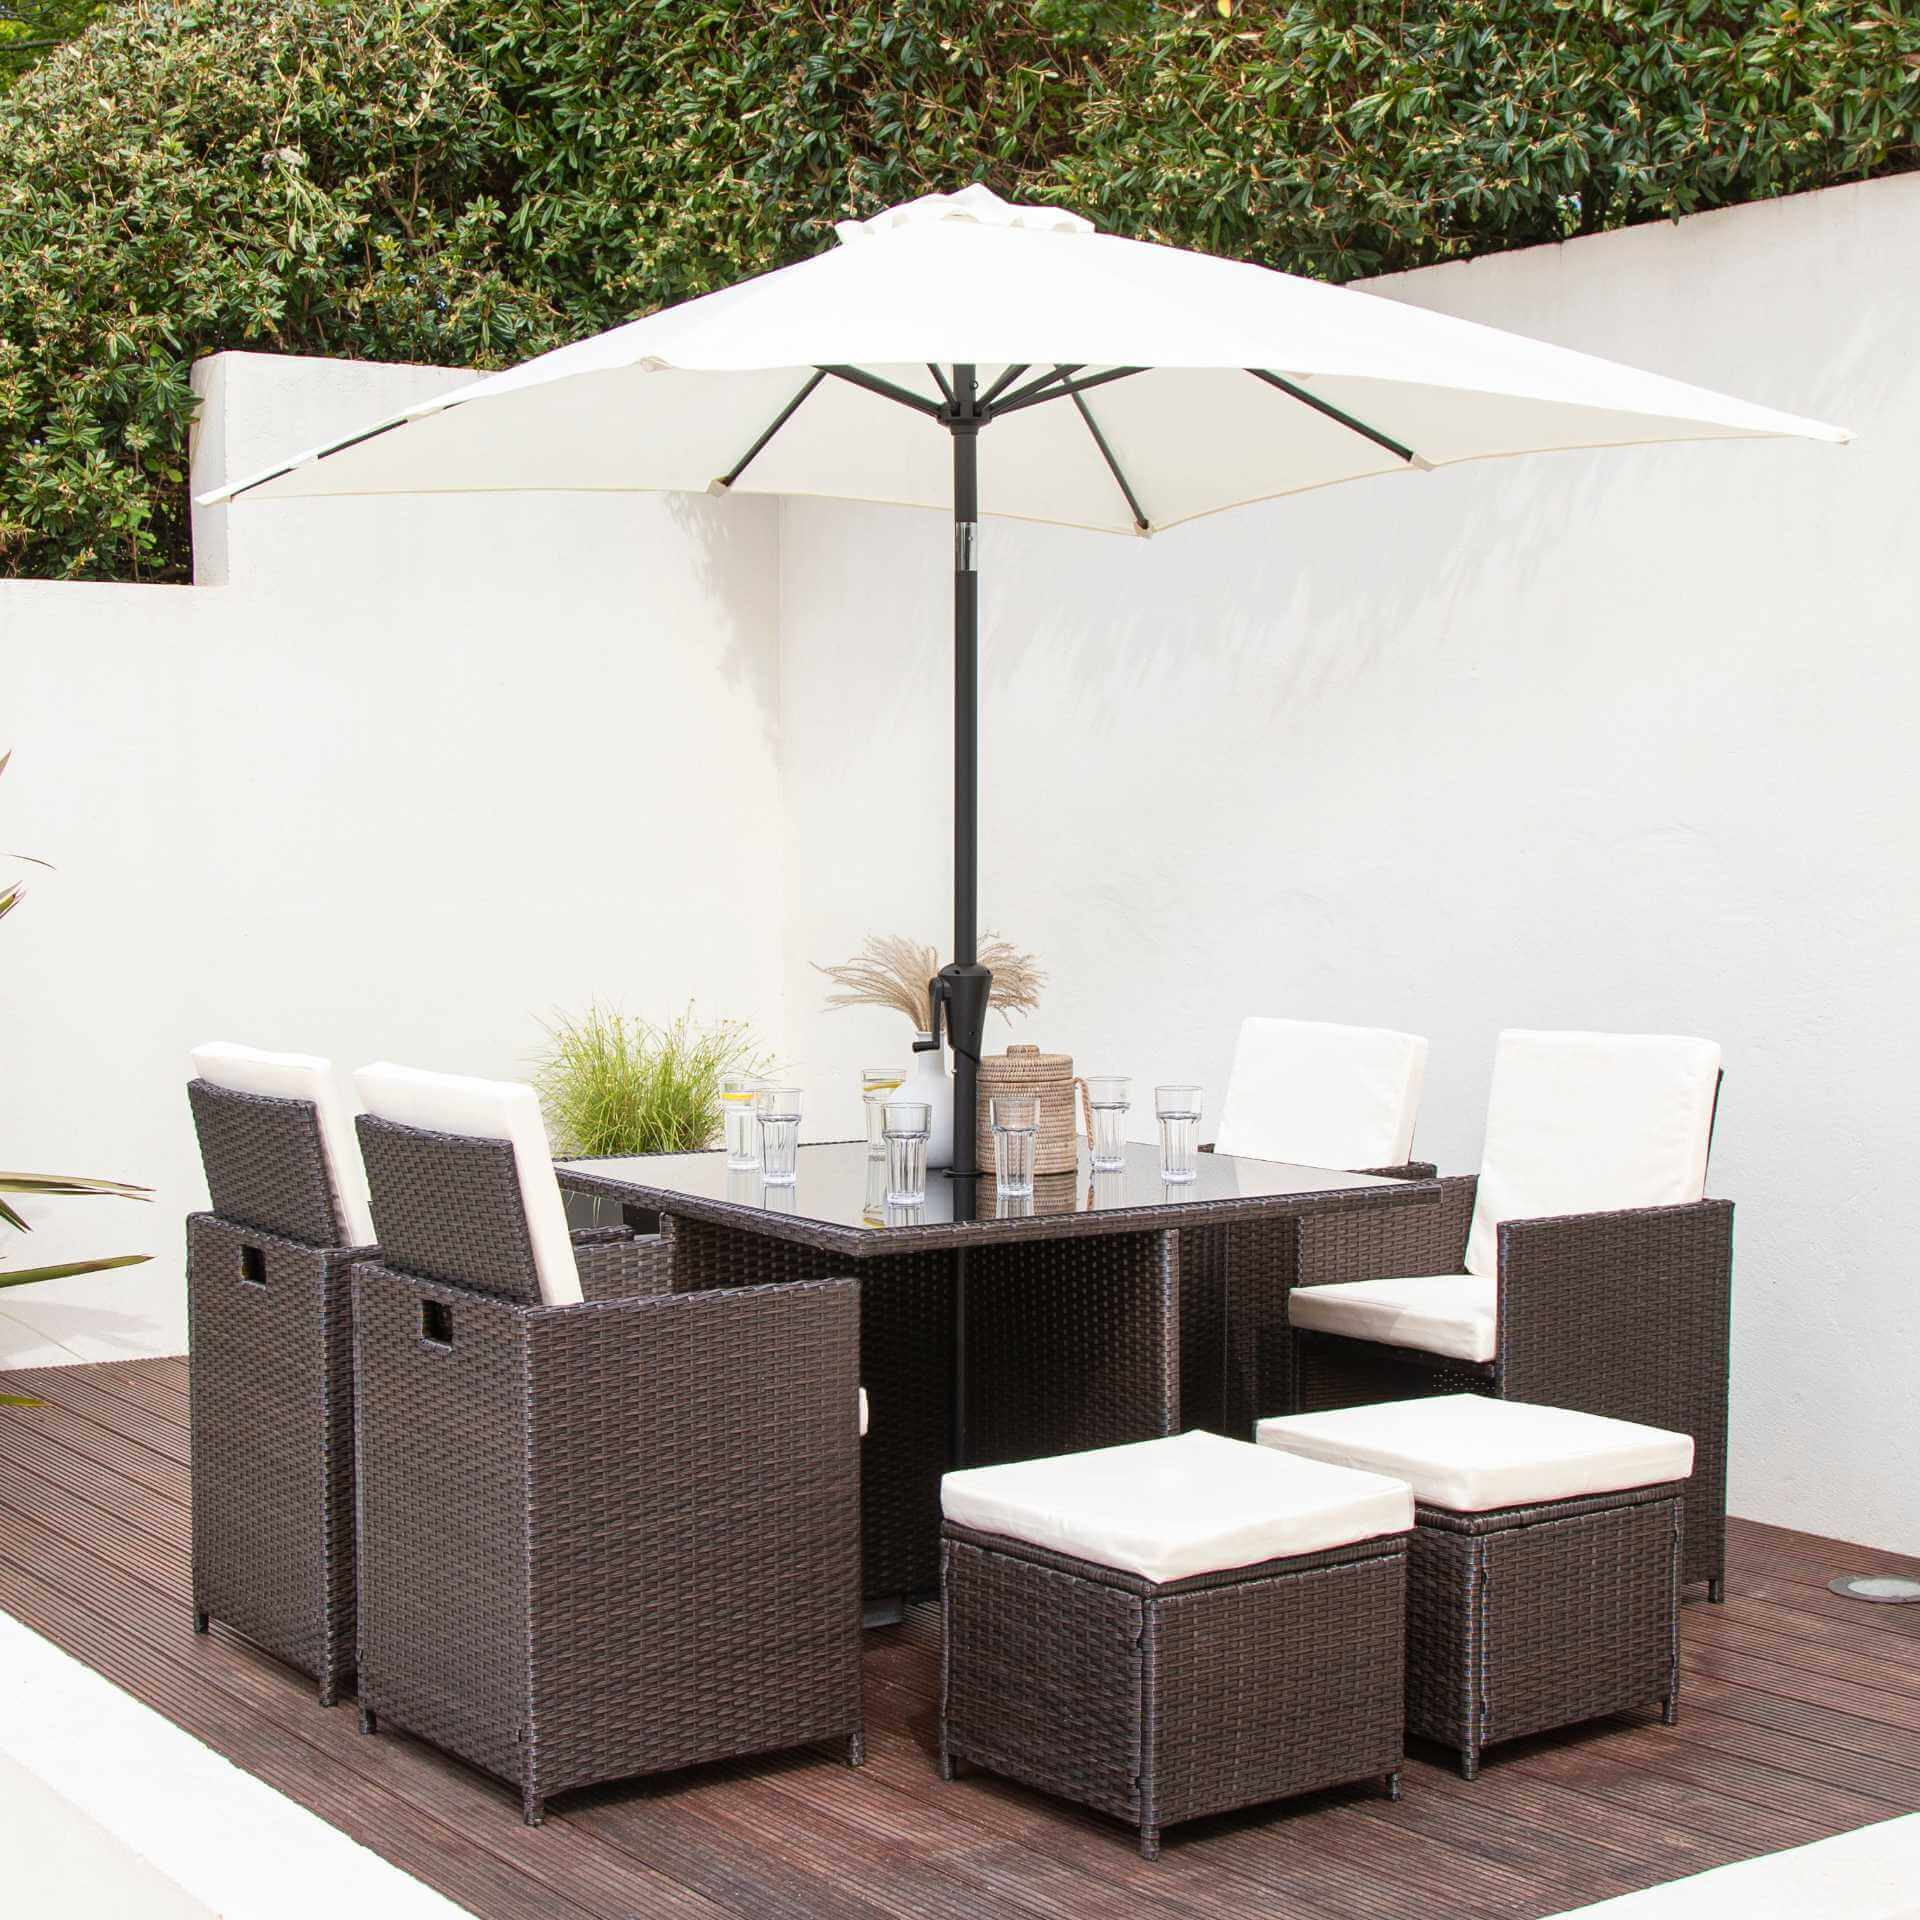 8 Seater Rattan Cube Outdoor Dining Set with Parasol - Mixed Brown Weave - Laura James